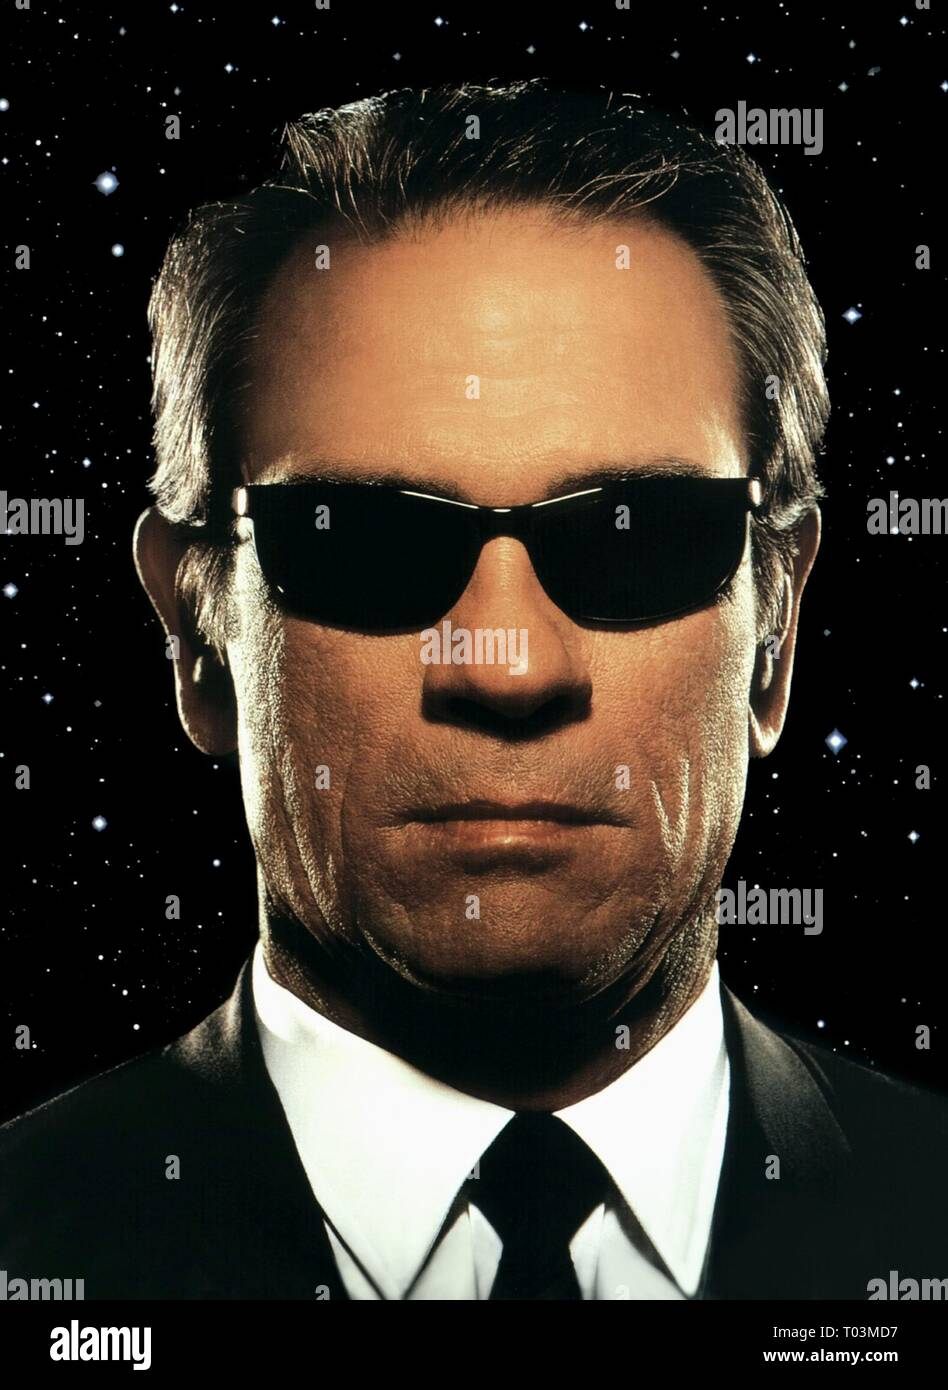 TOMMY LEE JONES, MEN IN BLACK, 1997 - Stock Image